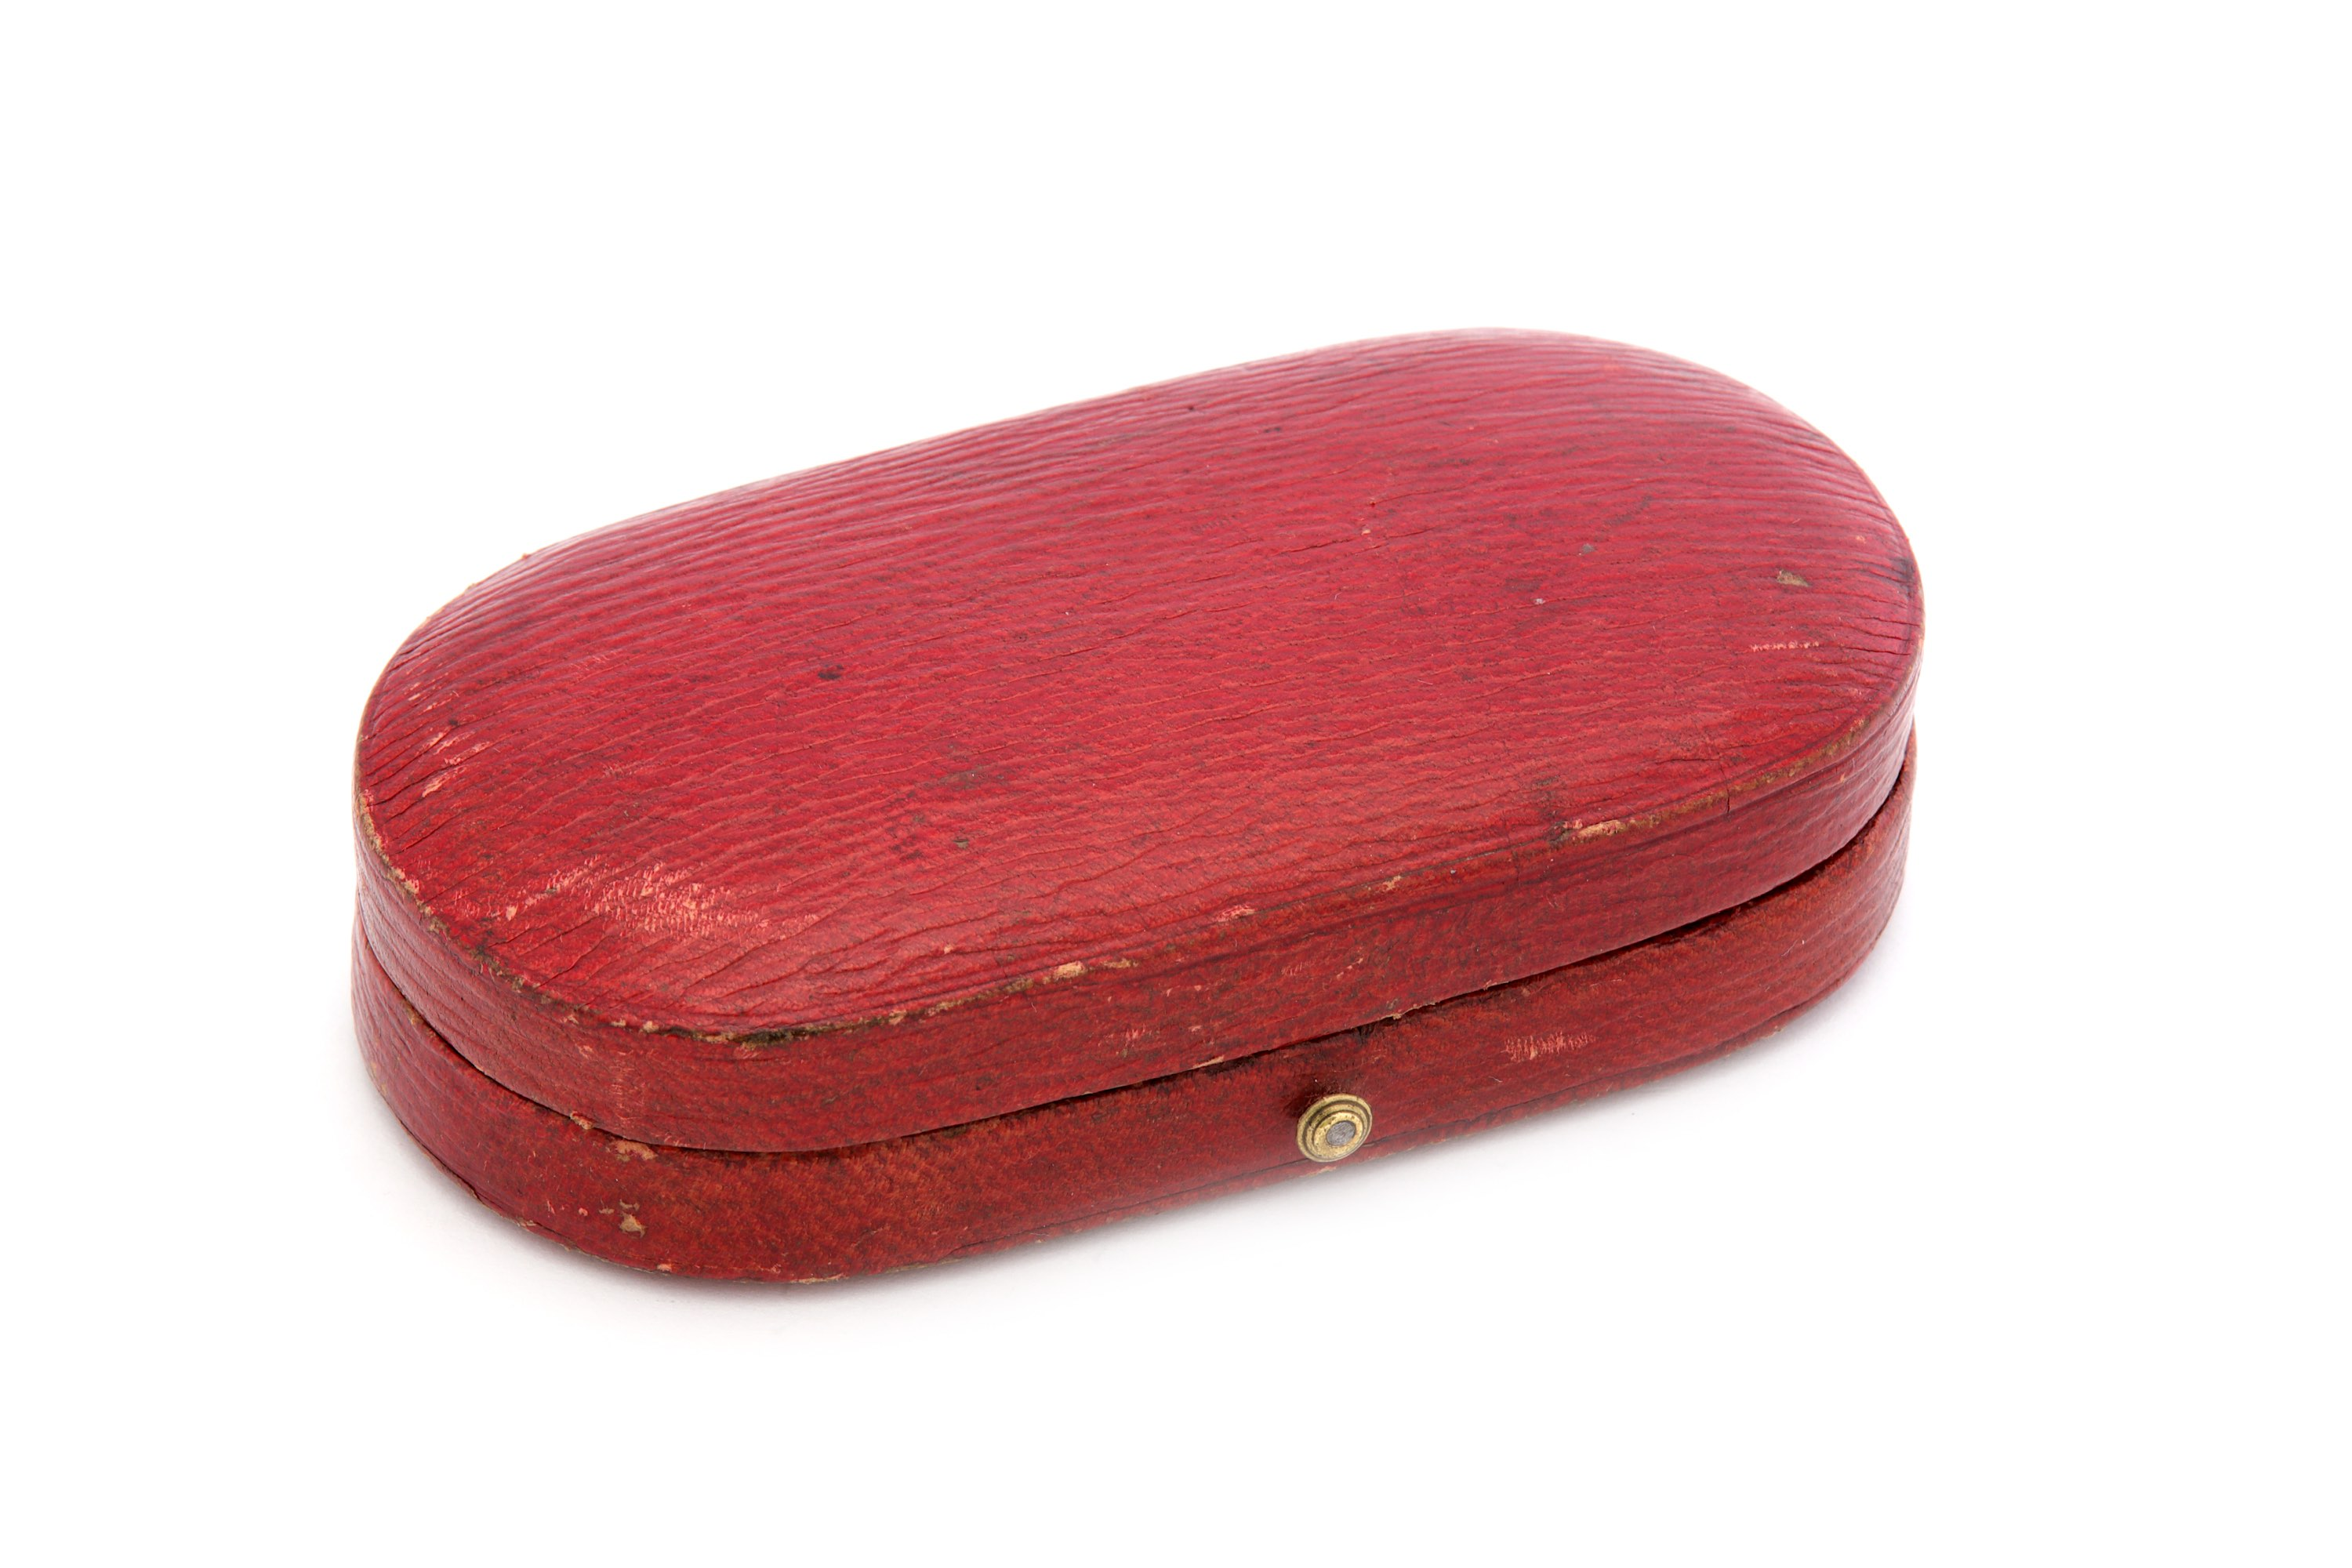 Lot 49 - An early 19th century English unmarked gold mounted ivory patch box circa 1800-1830